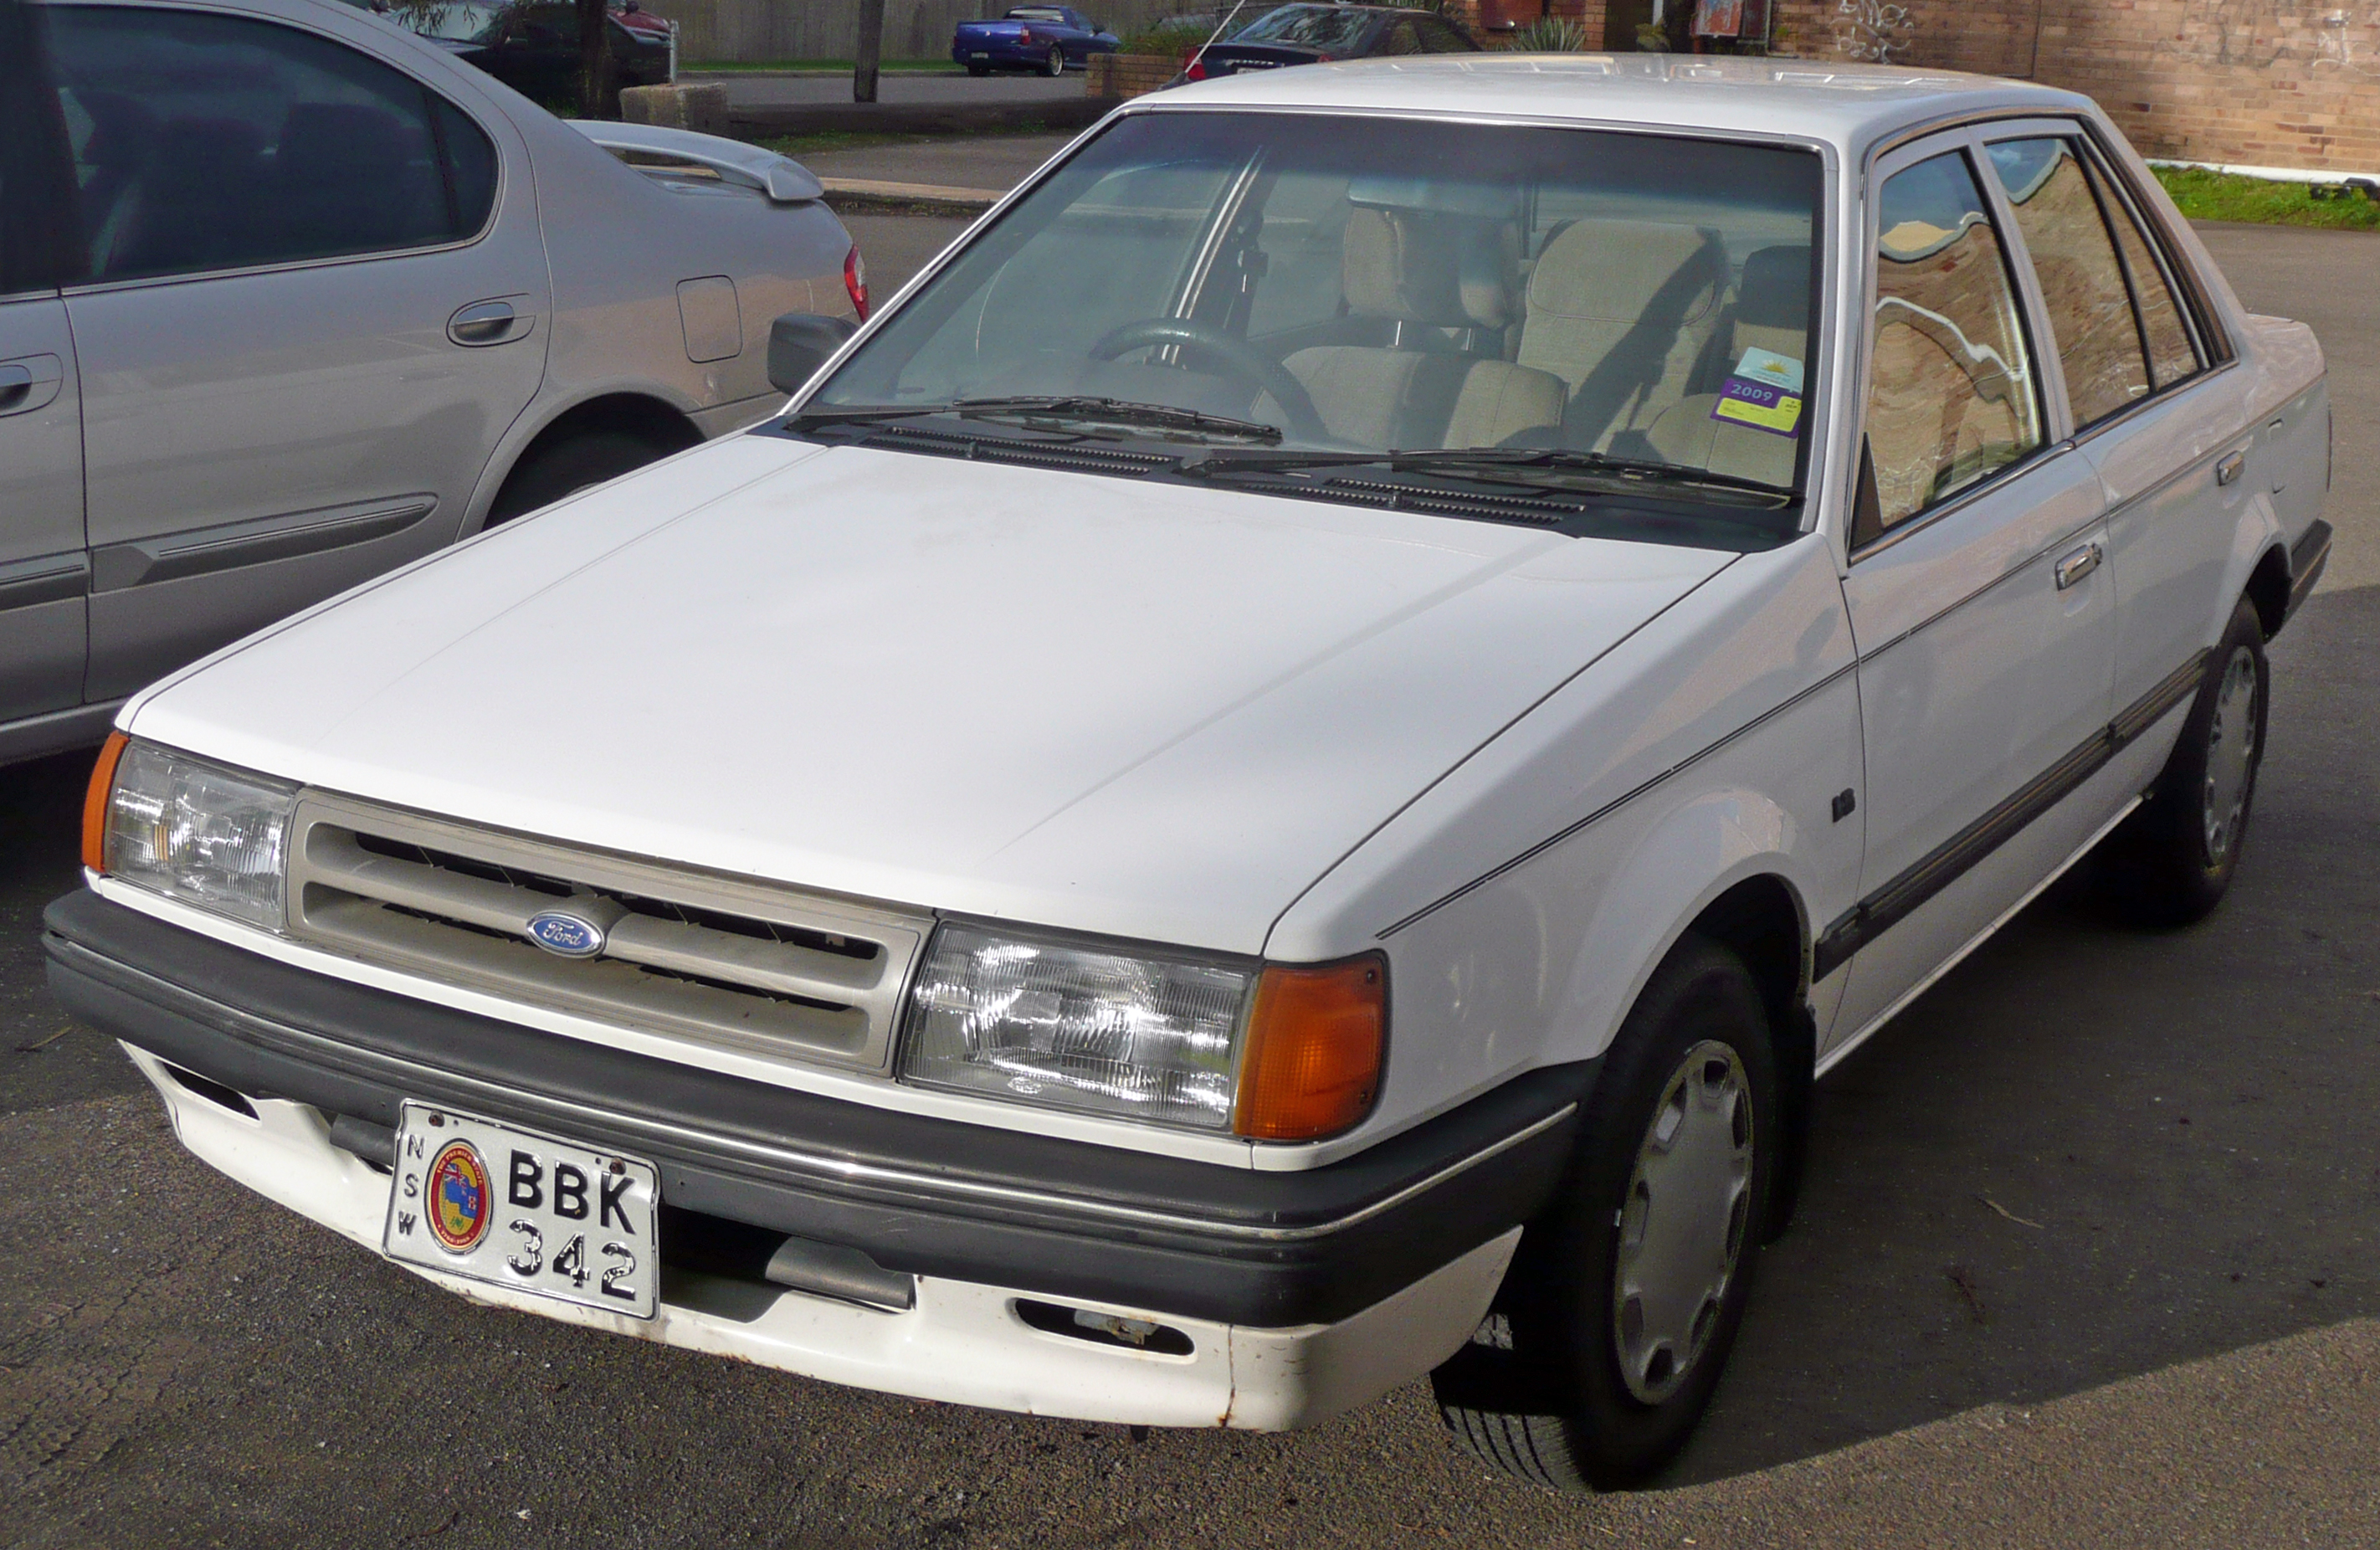 File:1985-1987 Ford Meteor (GC) GL sedan 02.jpg - Wikipedia, the ...